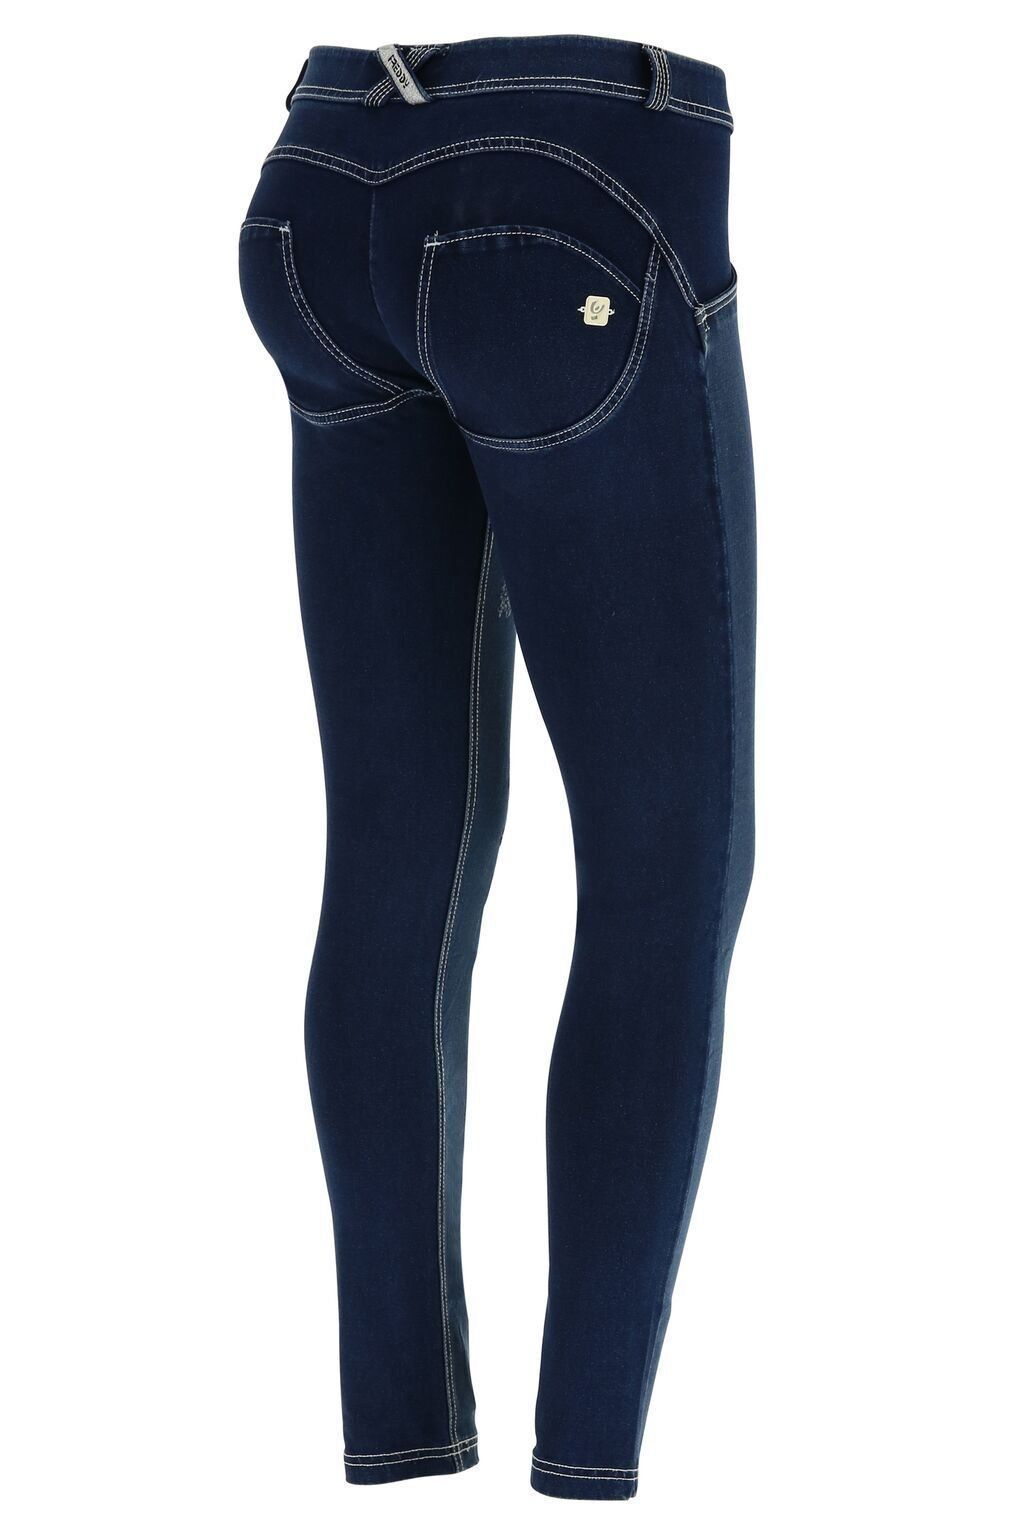 WR.UP® Shaping Jeans Skinny Mid Distressed Denim Front Dark Blue + White Stitching